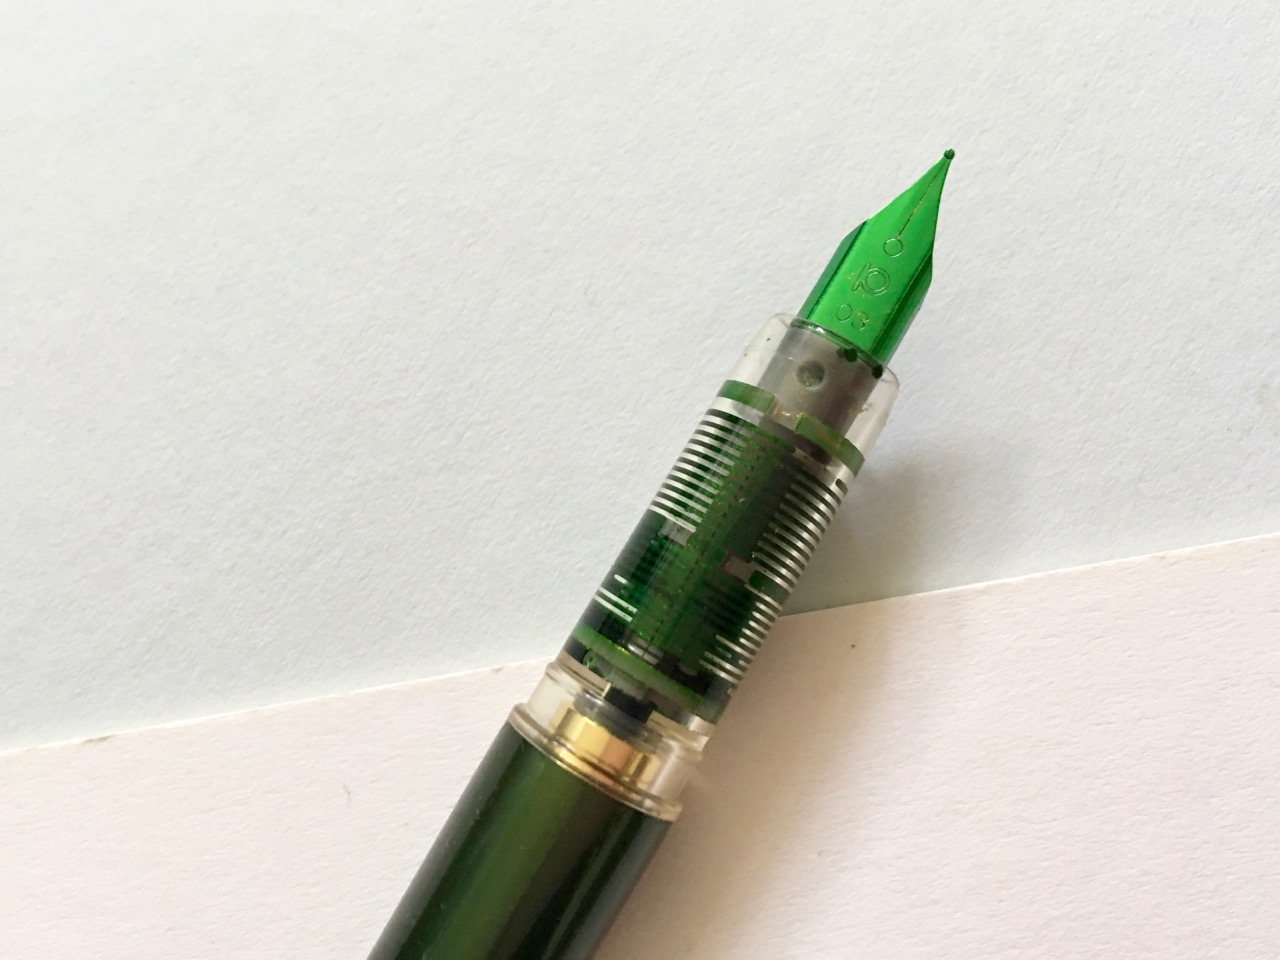 The luminous green nib and the clear plastic grip section.